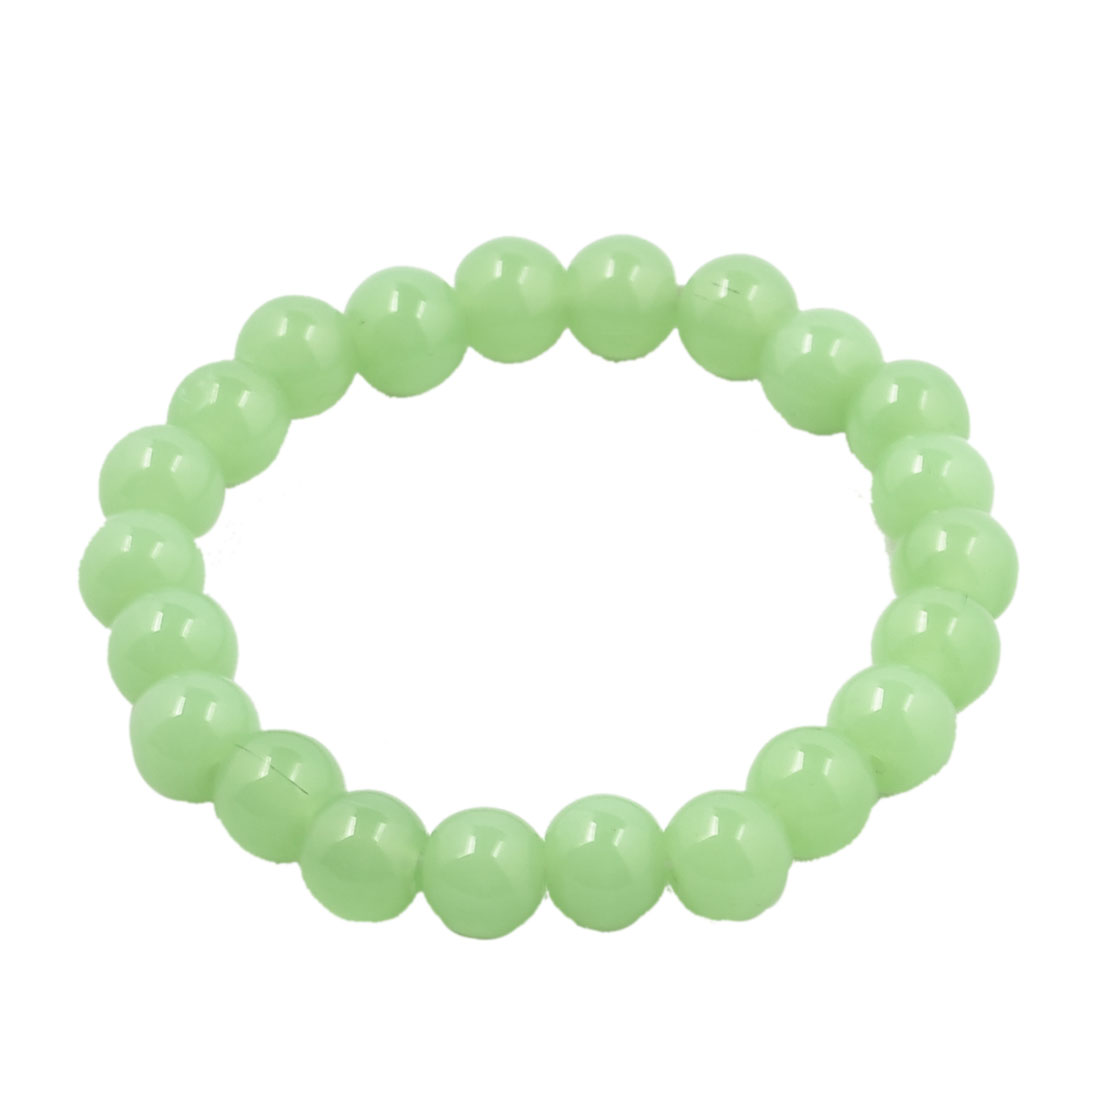 Green Glass 21 Beads Elastic Bracelet Bangle for Ladies